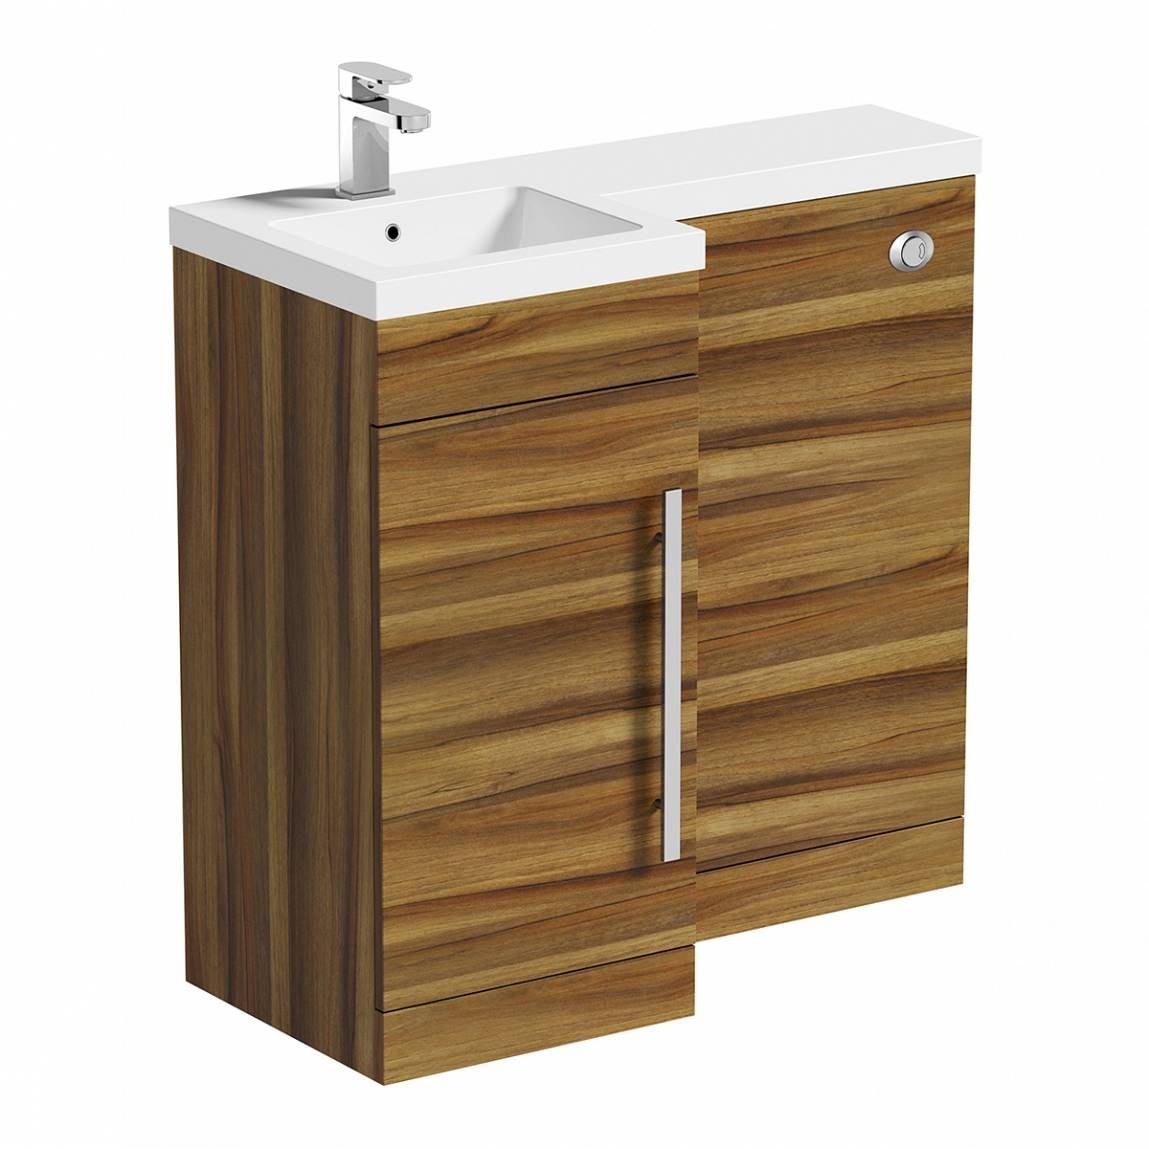 Image of MySpace Walnut Combination Unit LH including Concealed Cistern